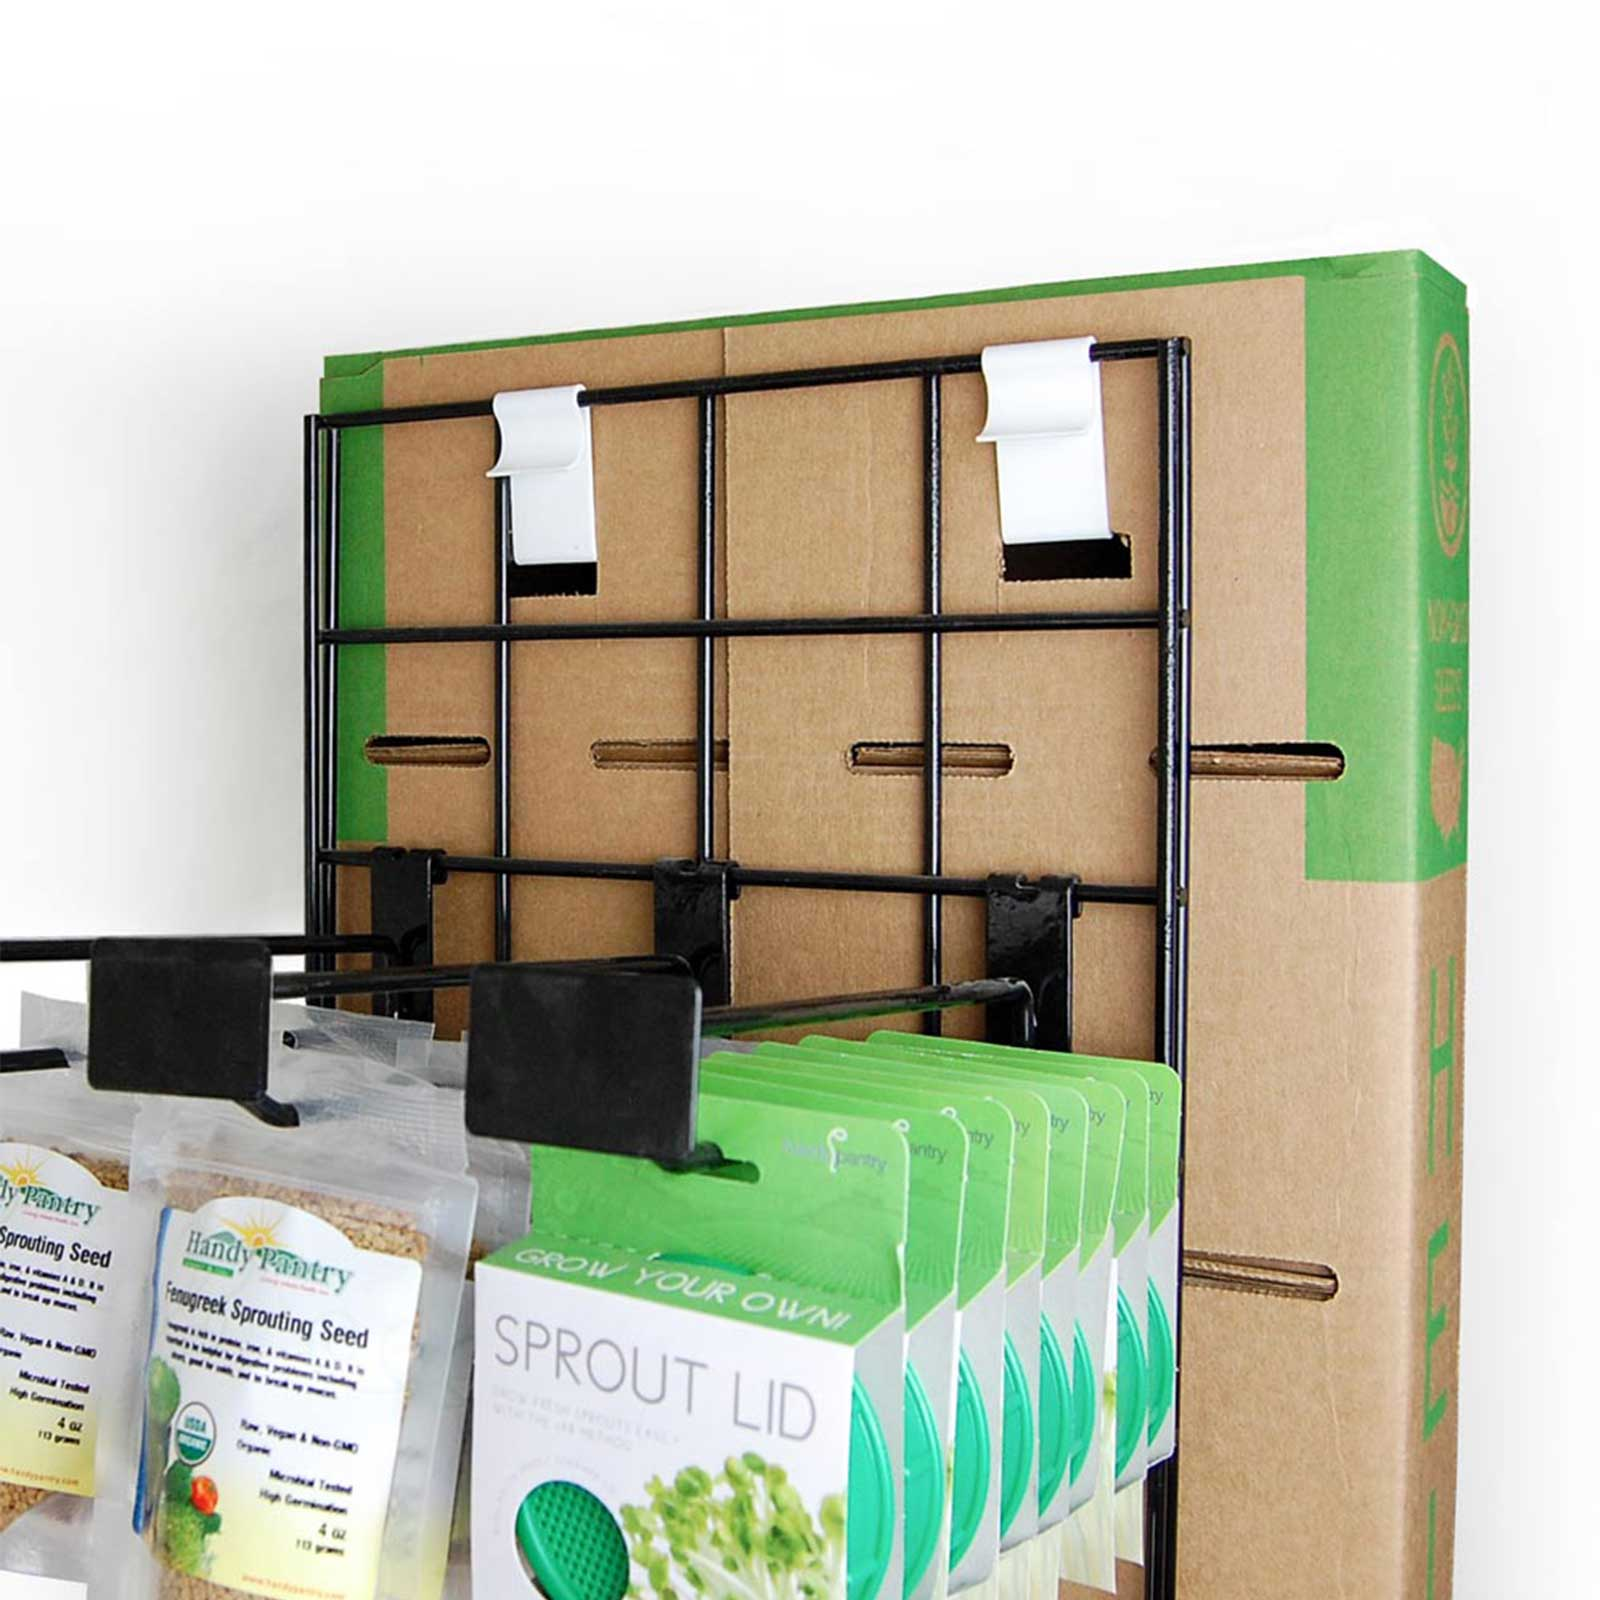 Snaps onto Existing Wholesale Display